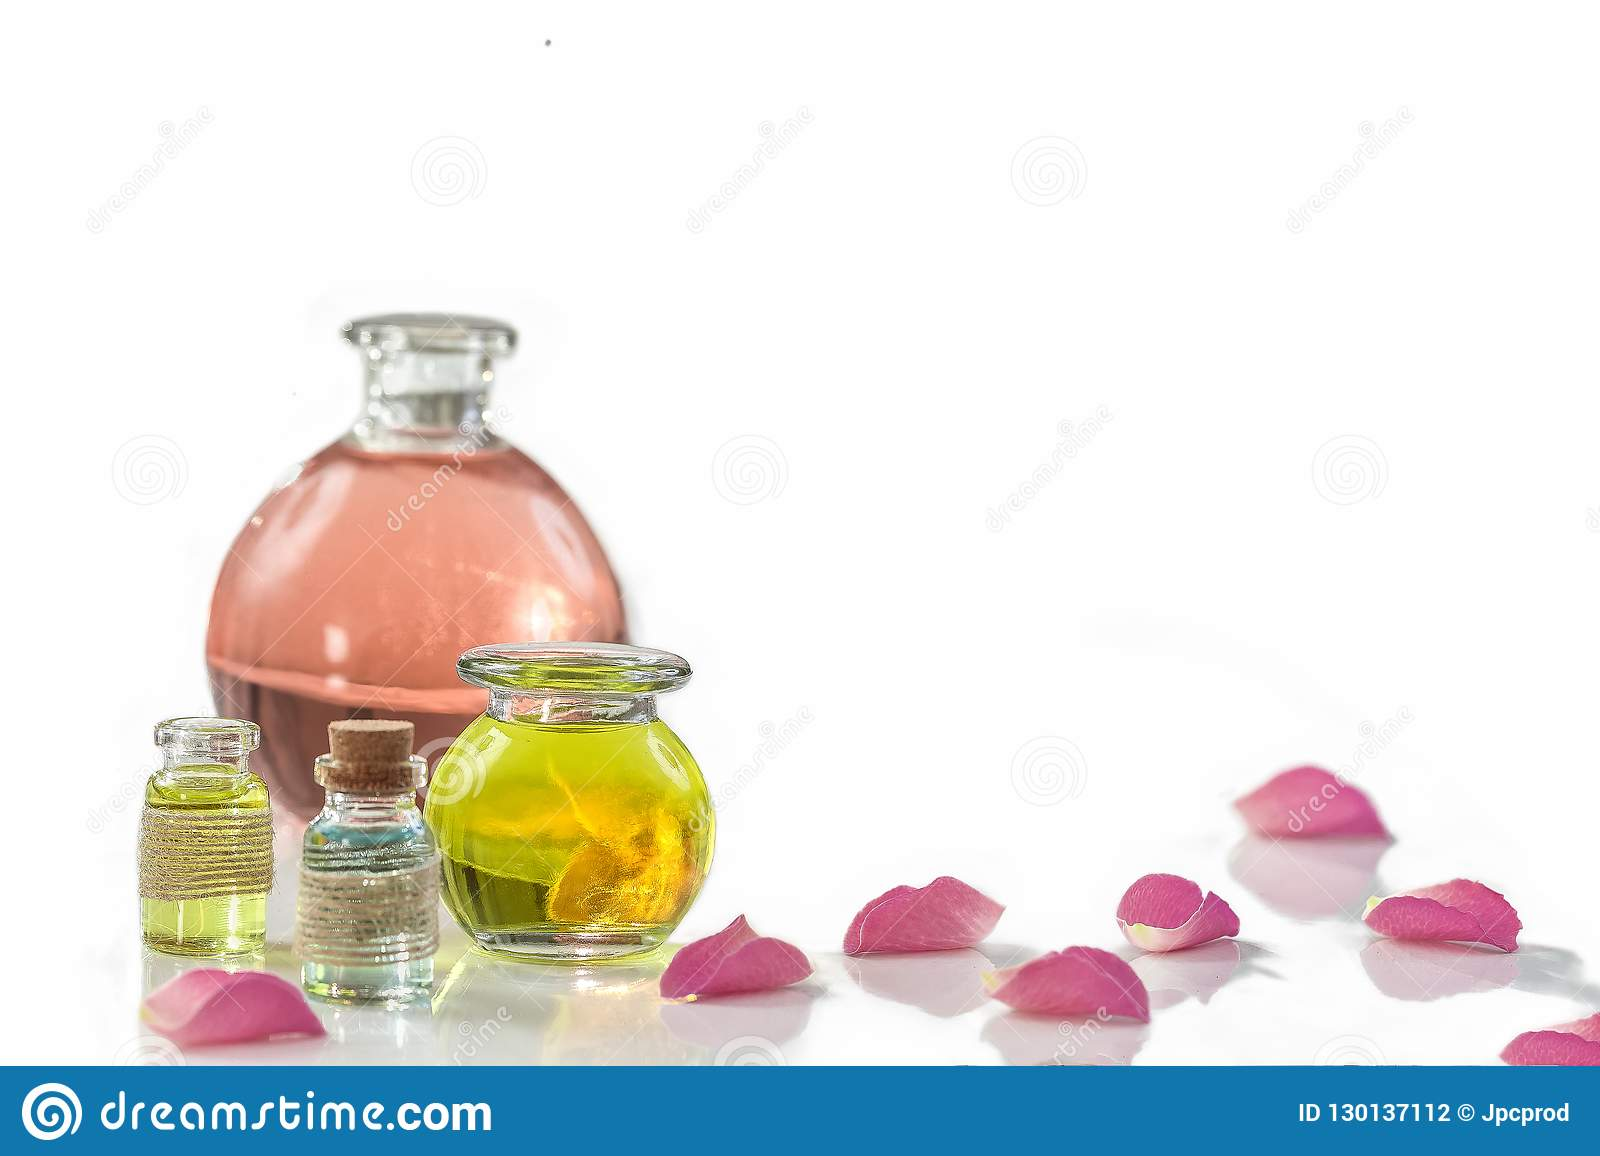 Rose Flower Petals With Aromatherapy Essential Oil Glass Bottle Over